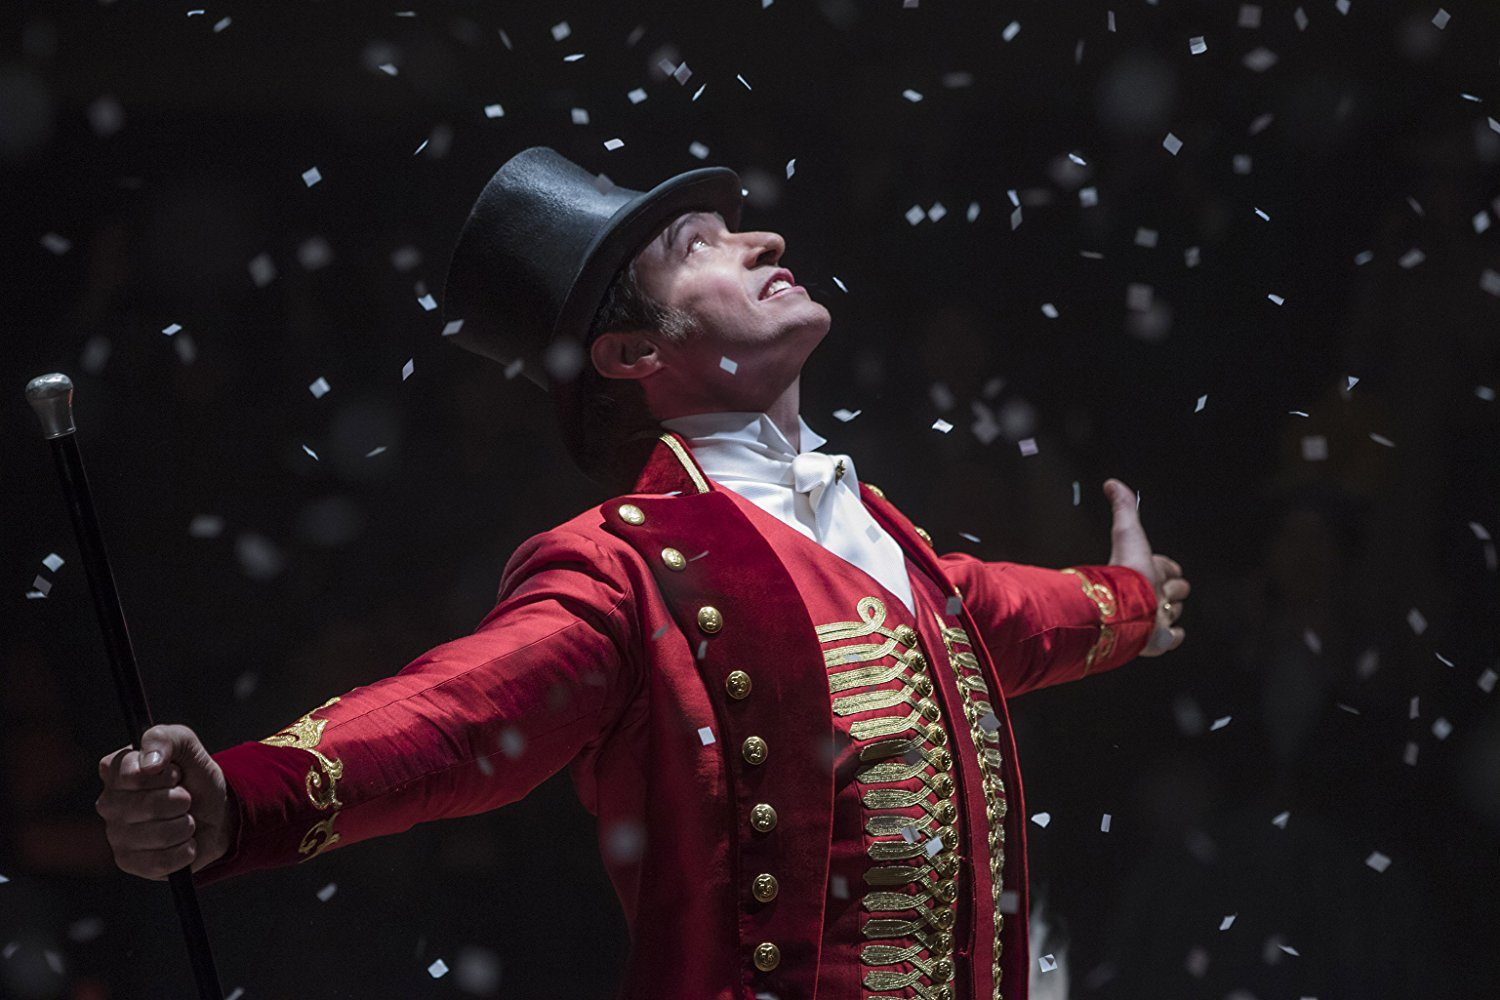 Crtica o rei do show the greatest showman eua 2017 cone do crtica o rei do show the greatest showman eua 2017 stopboris Gallery